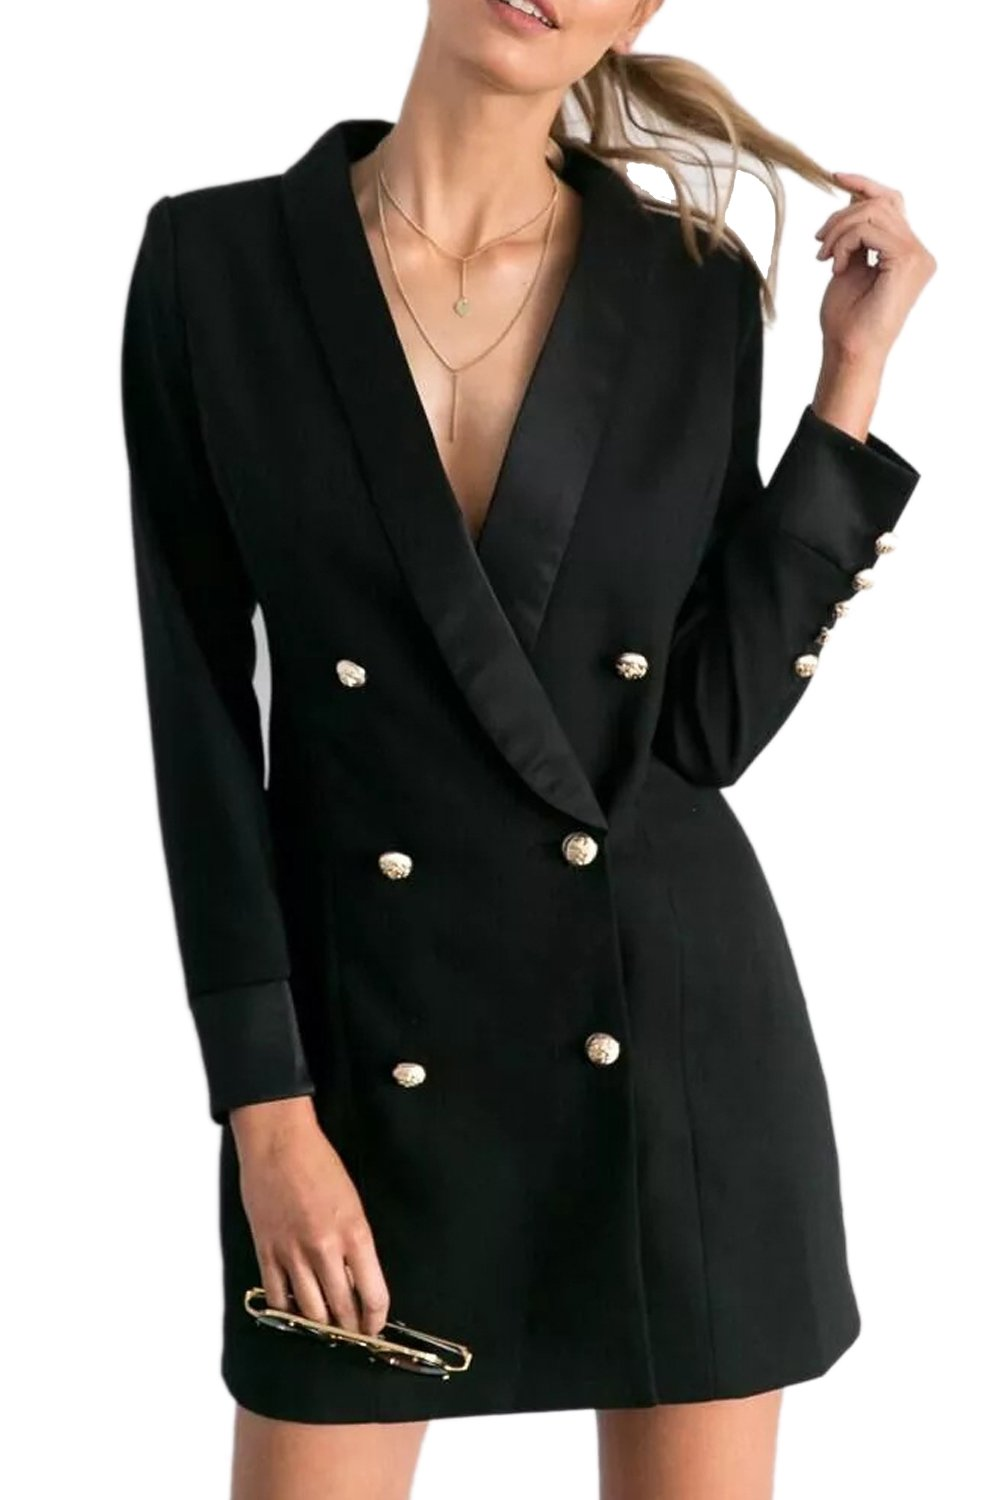 Women Elegant Long Sleeve Double Breasted Midi Suit Blazer Jacket Coat CALFC2550